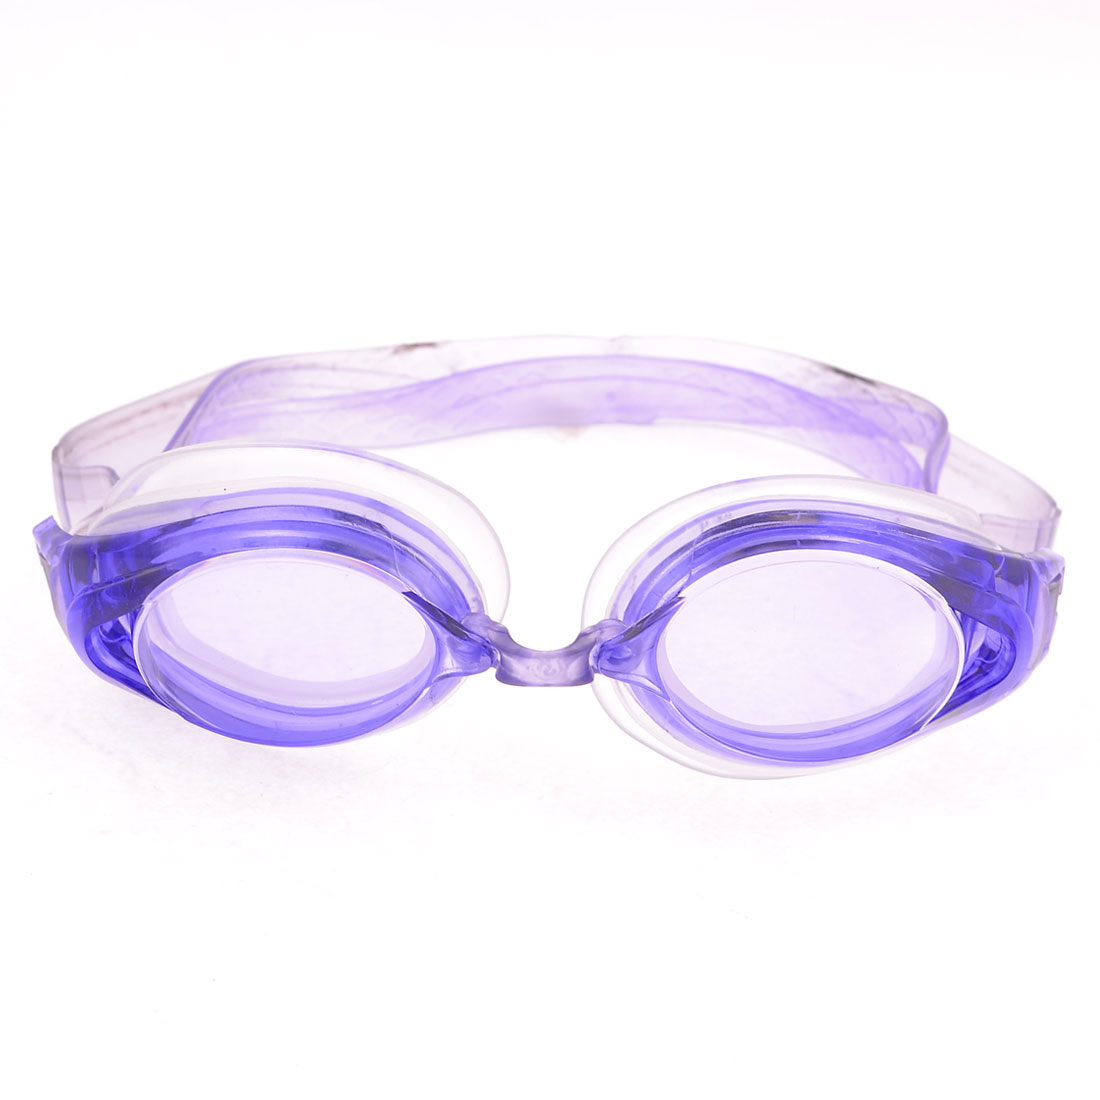 Silicone Adjustable Band Oval Lens Swimming Goggles Eyeglasses Light Purple w Earcap